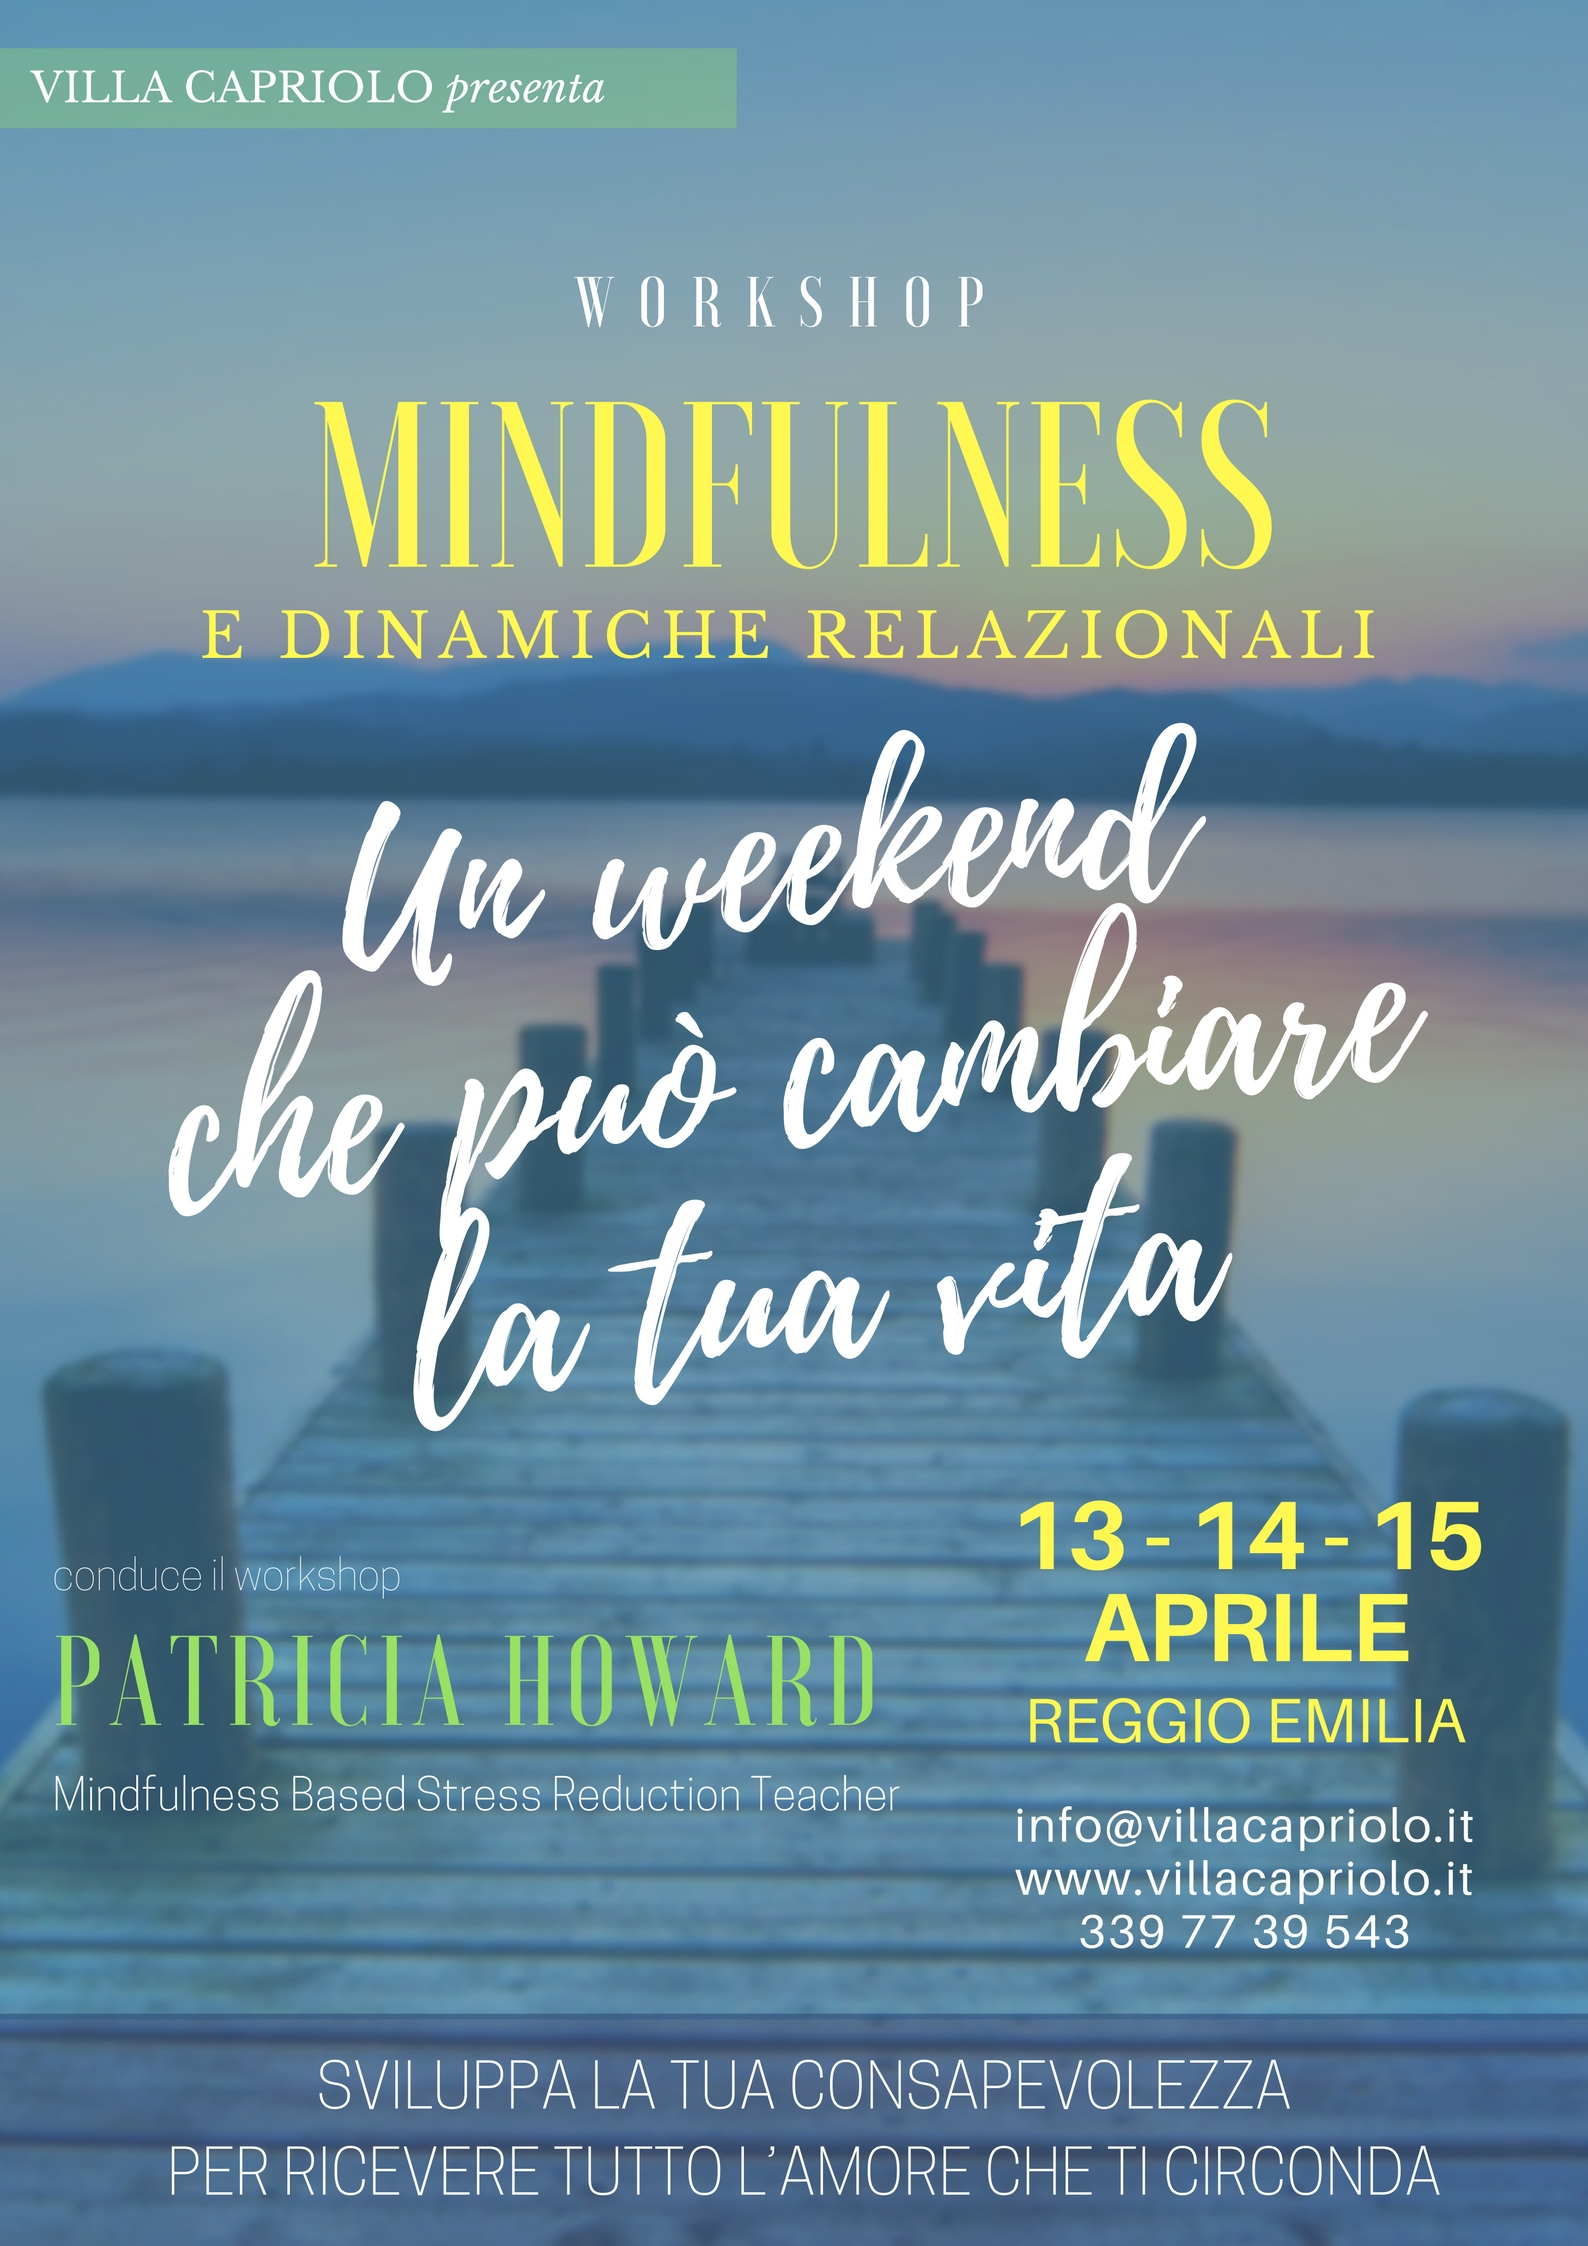 WORKSHOP MINDFULNESS_page01.jpg